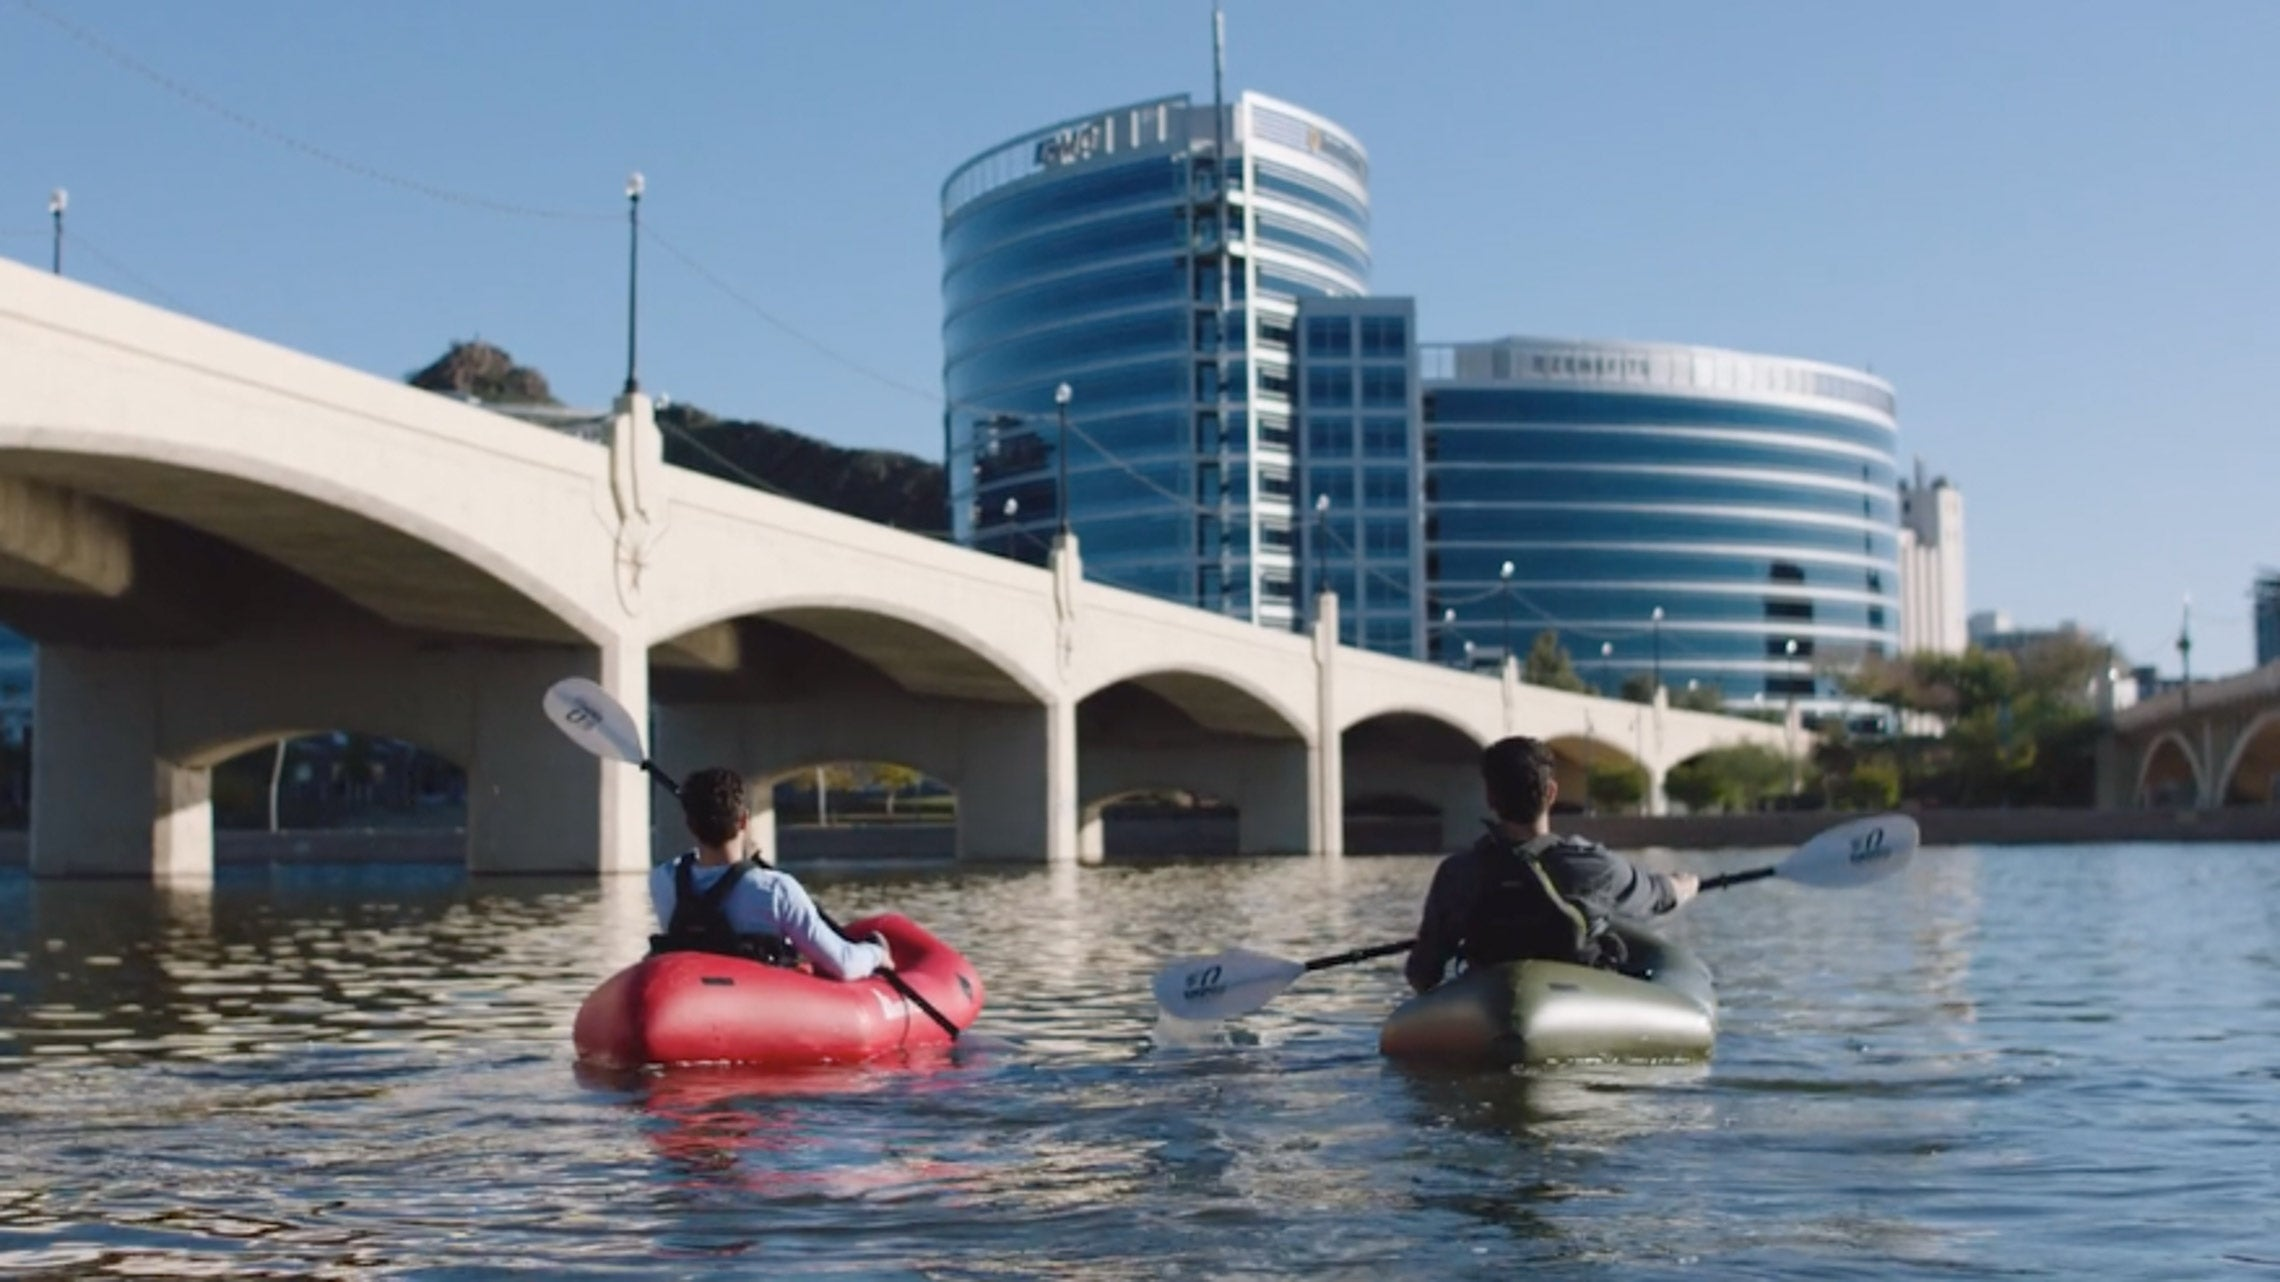 Friends packrafting in a city landscape. Kokopelli XPD Packrafting Adventures